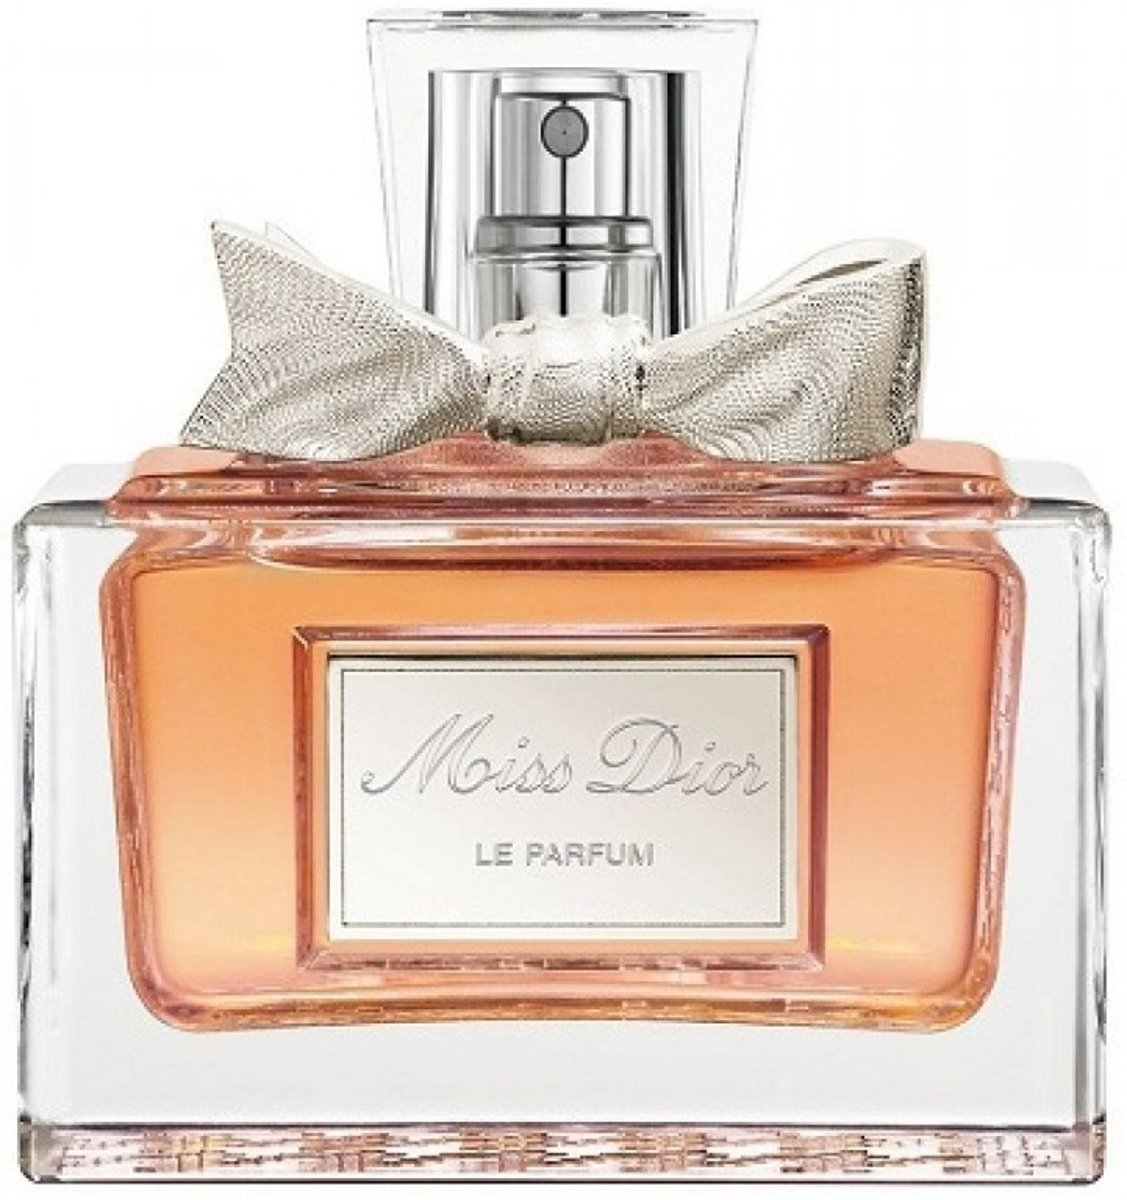 Miss Dior Le Parfum 75 ml - Eau de parfum - for Women